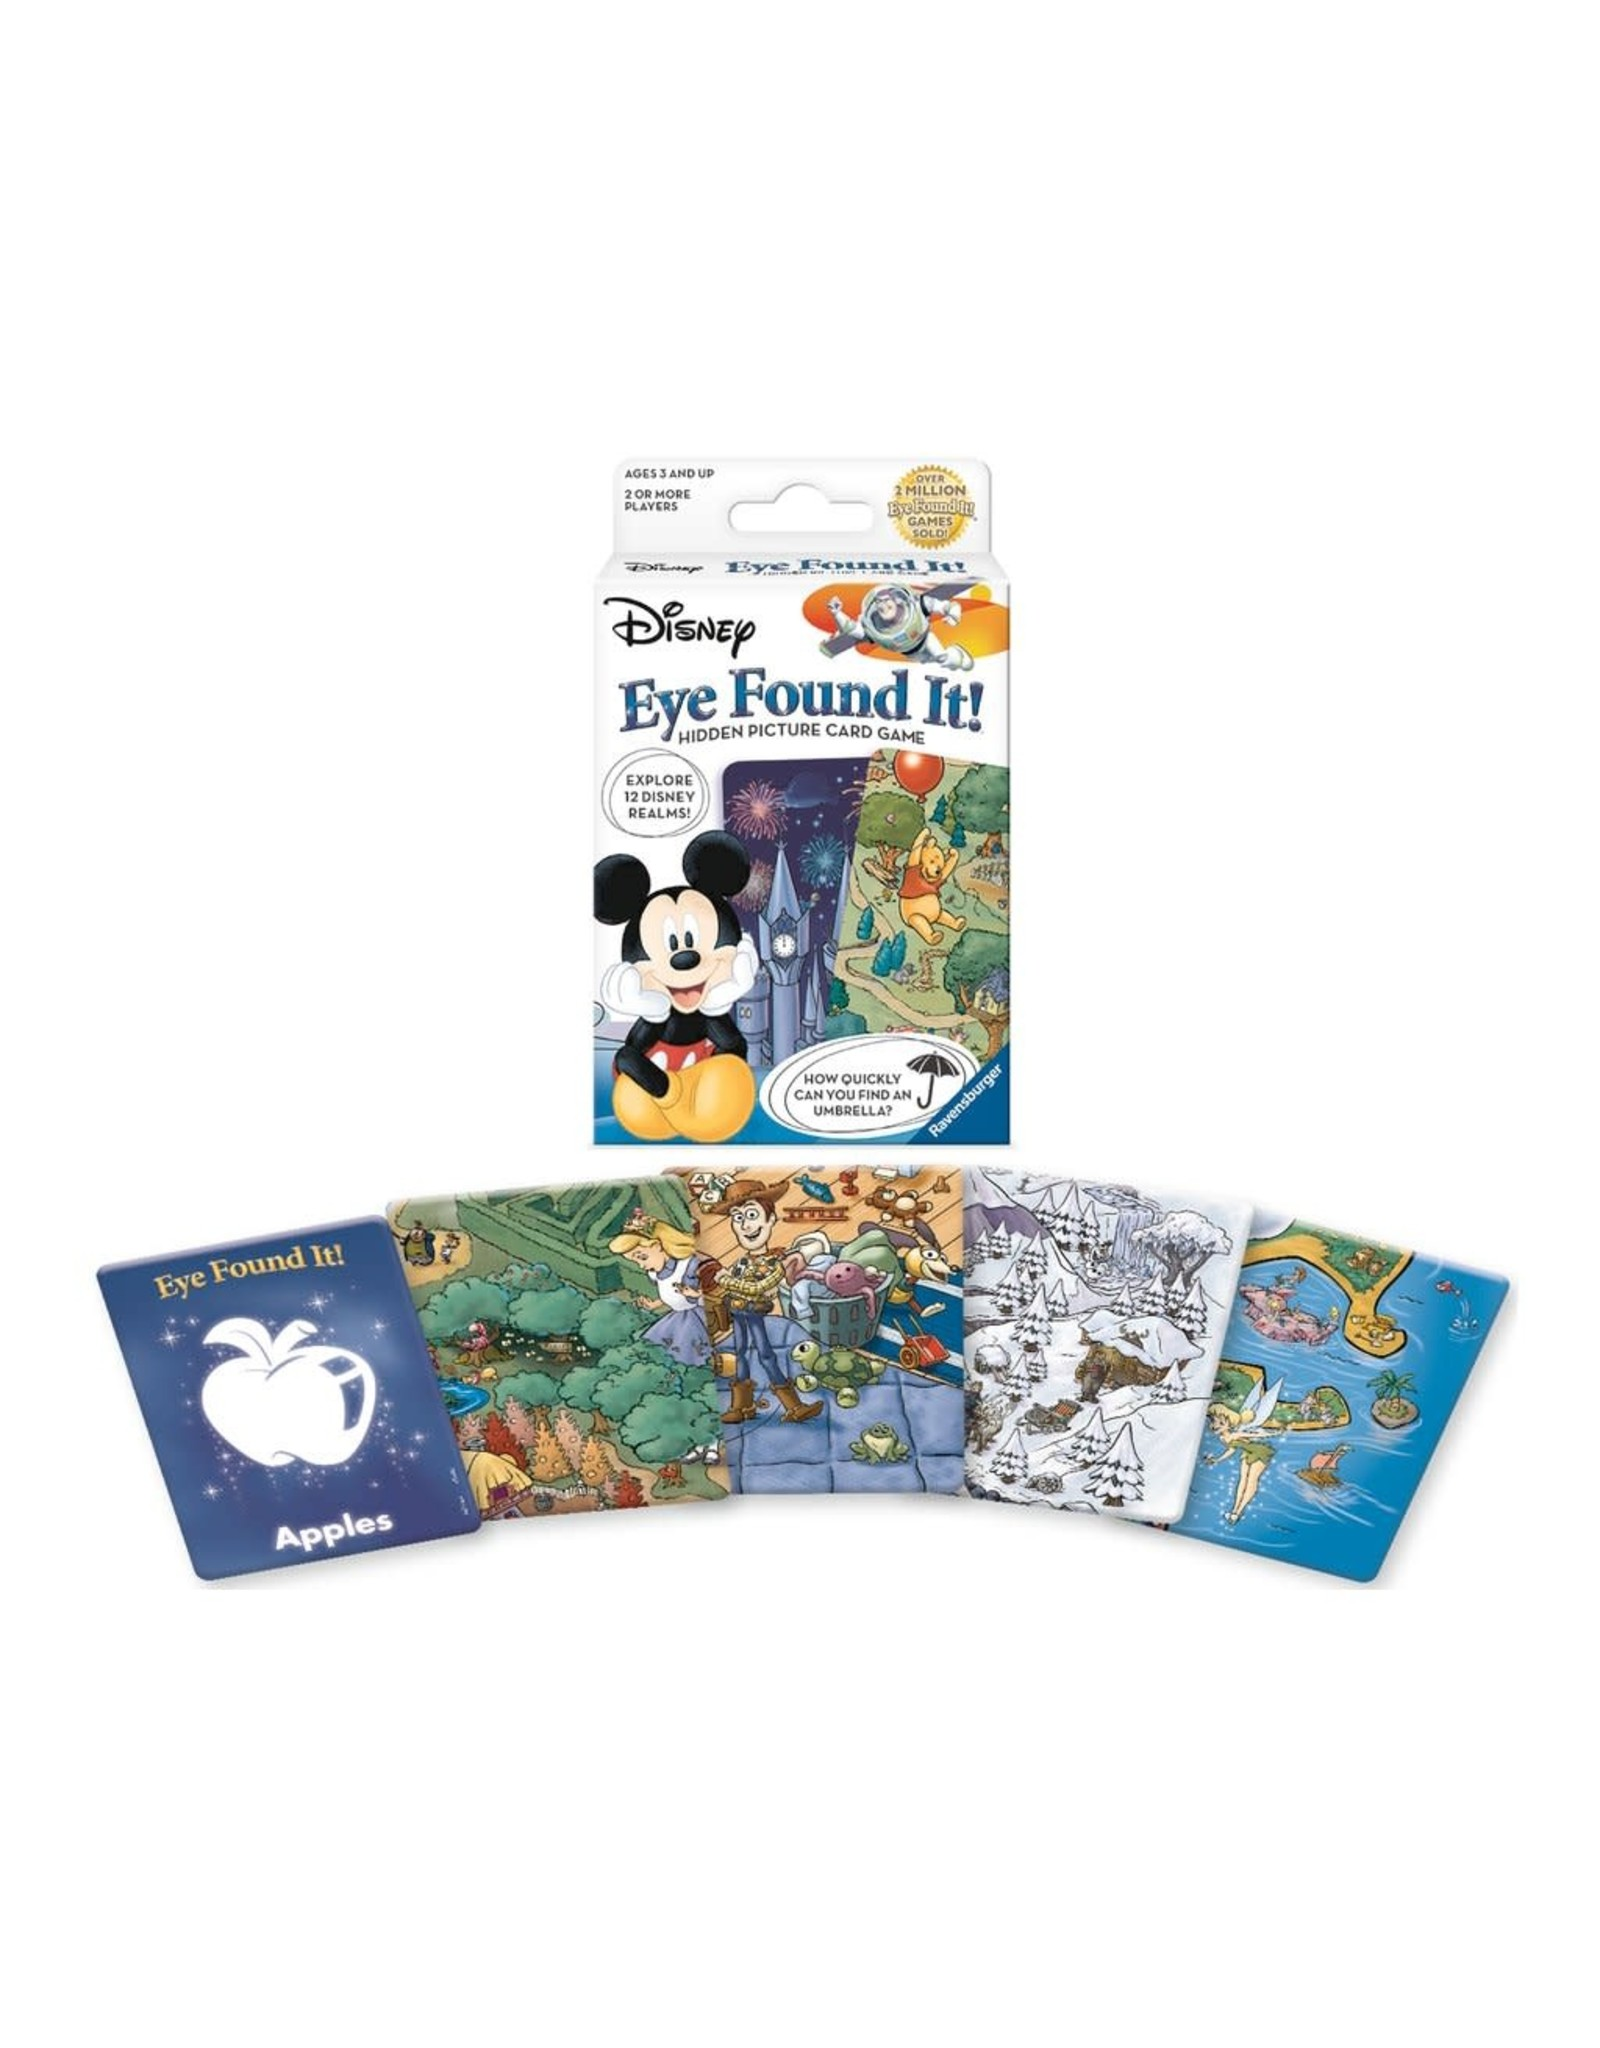 Ravensburger Disney Eye Found It! Hidden Picture Card Game